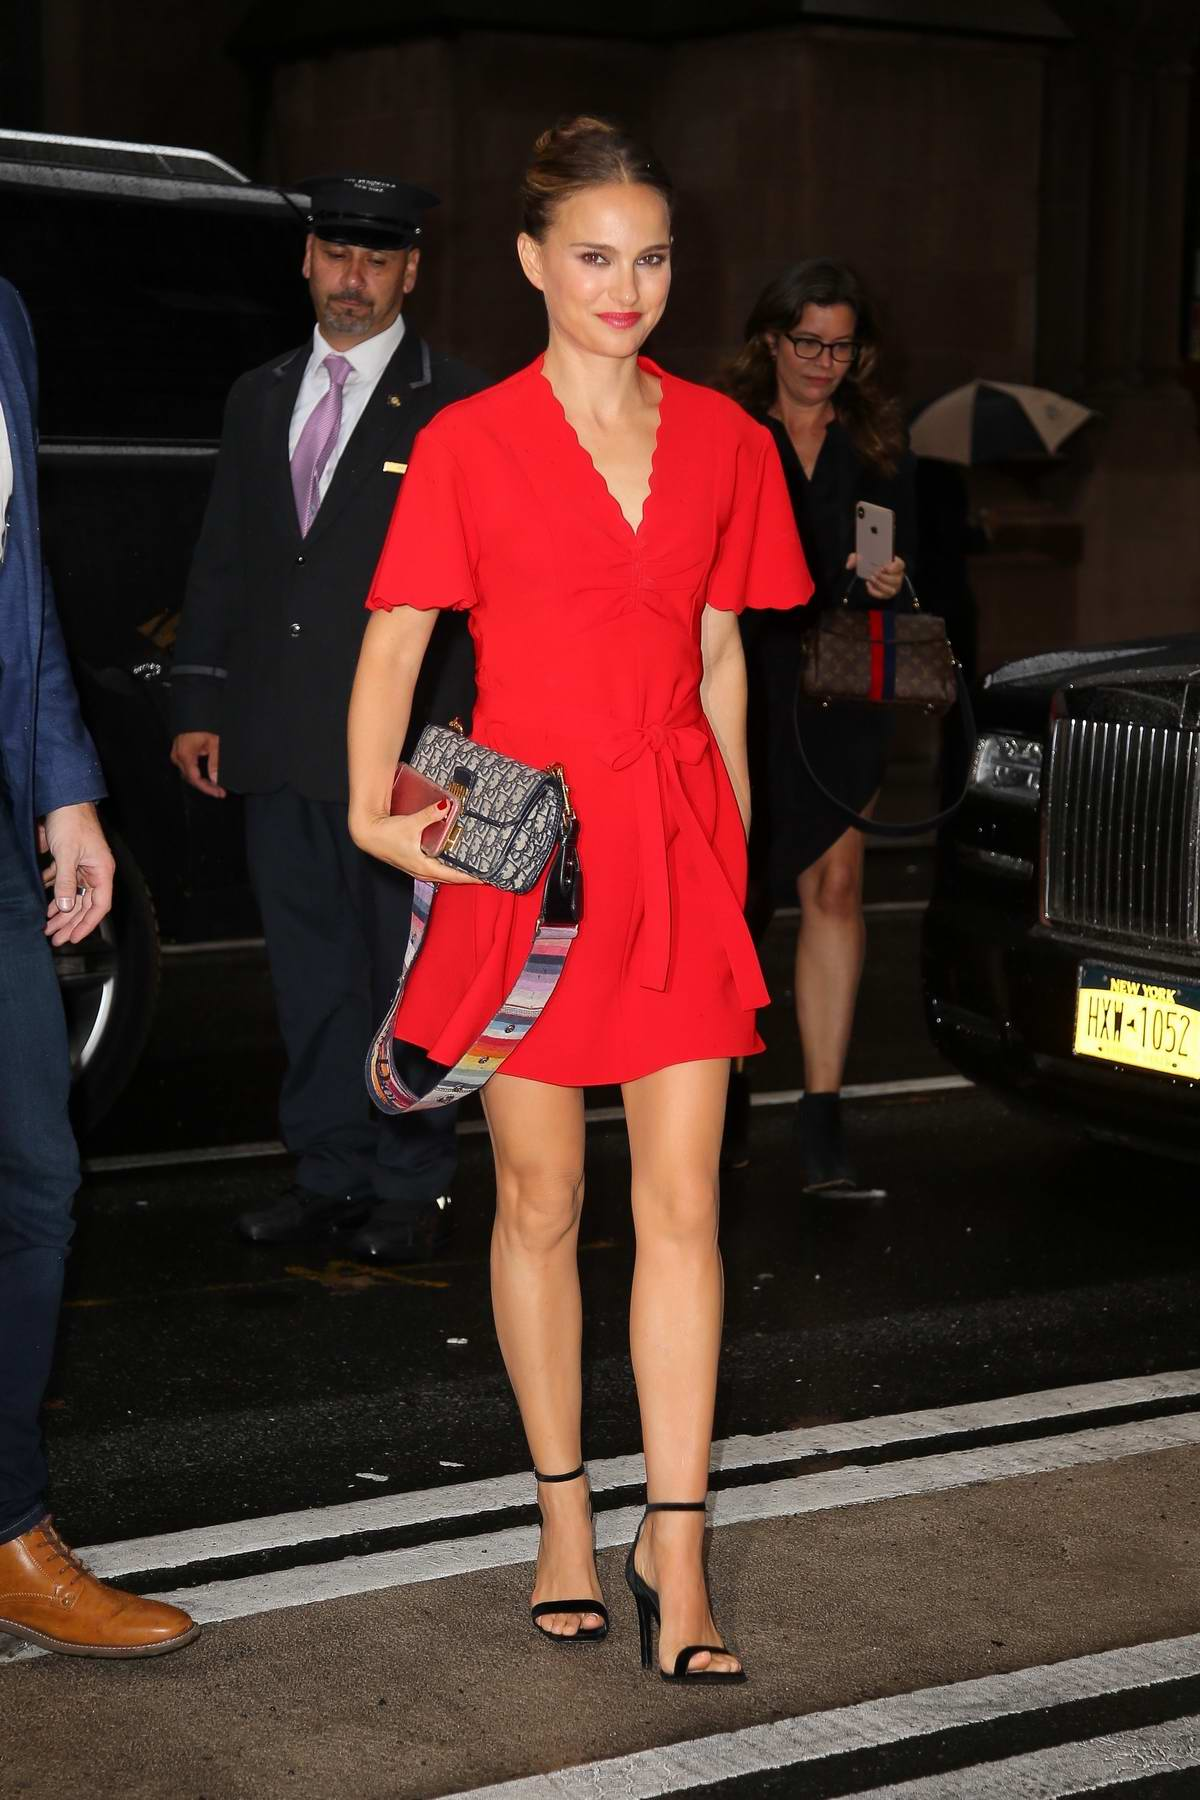 Natalie Portman looks fab in a short red dress while visiting Good Morning America in New York City